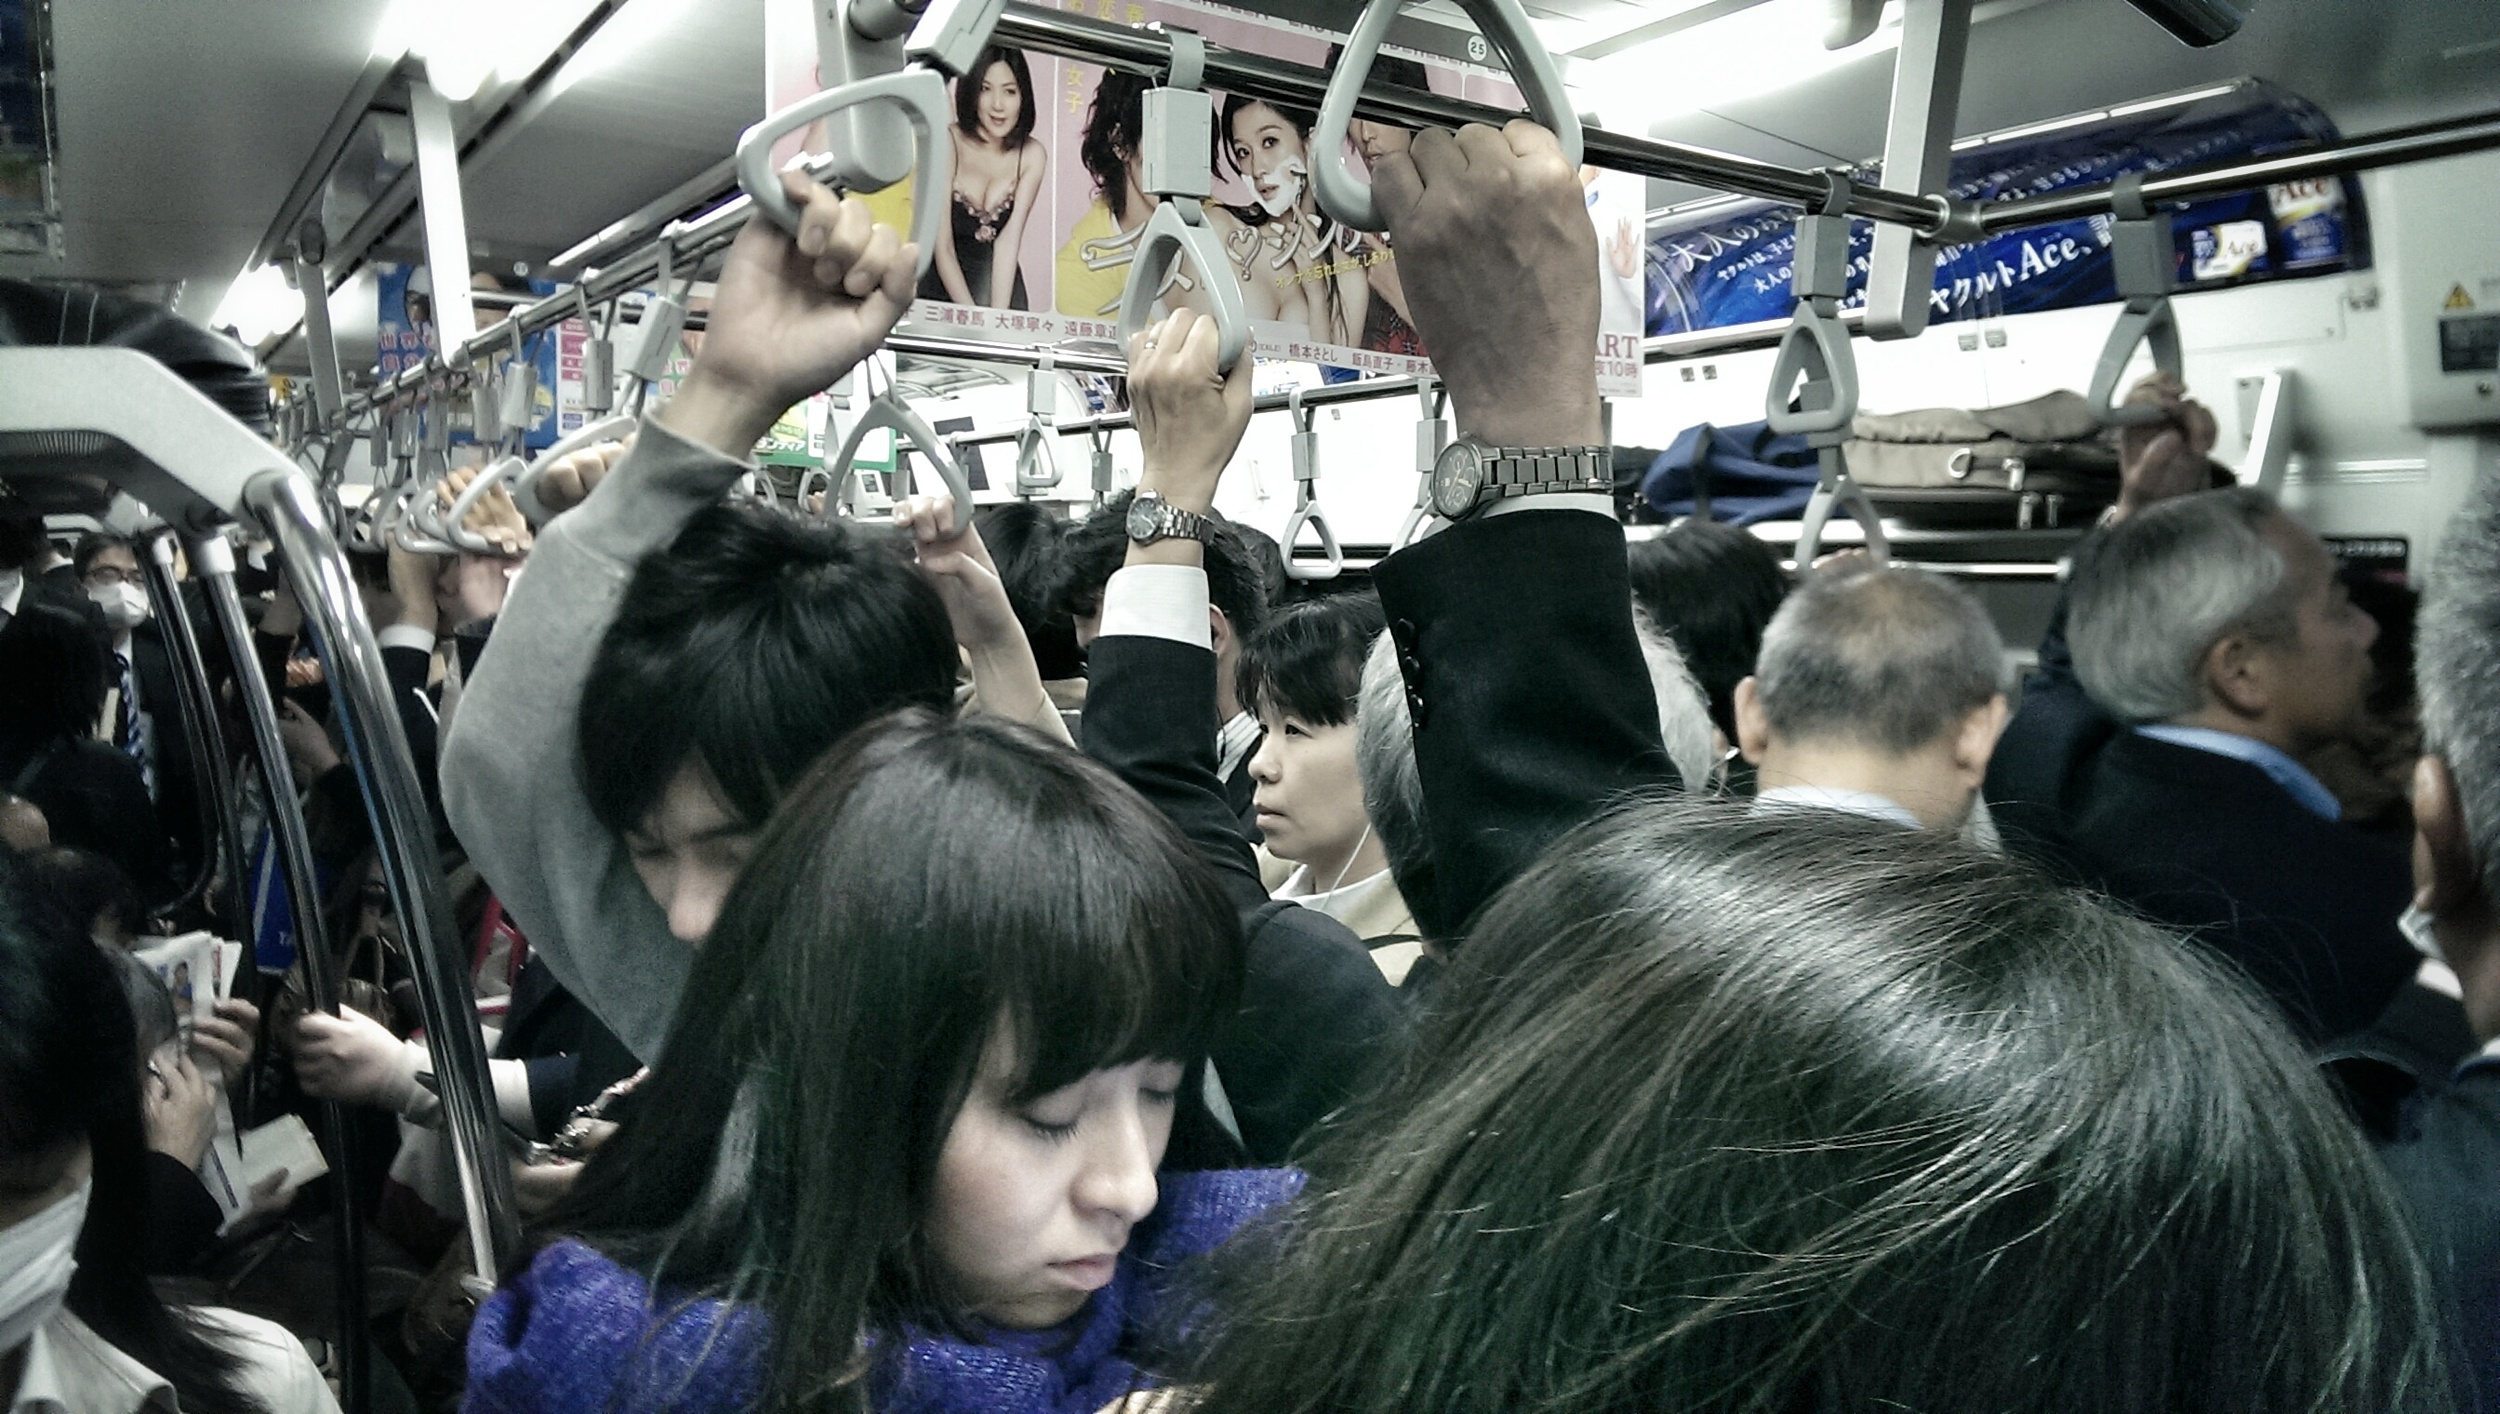 Tired faces during evening rush hour on the JR Yamanote Line.